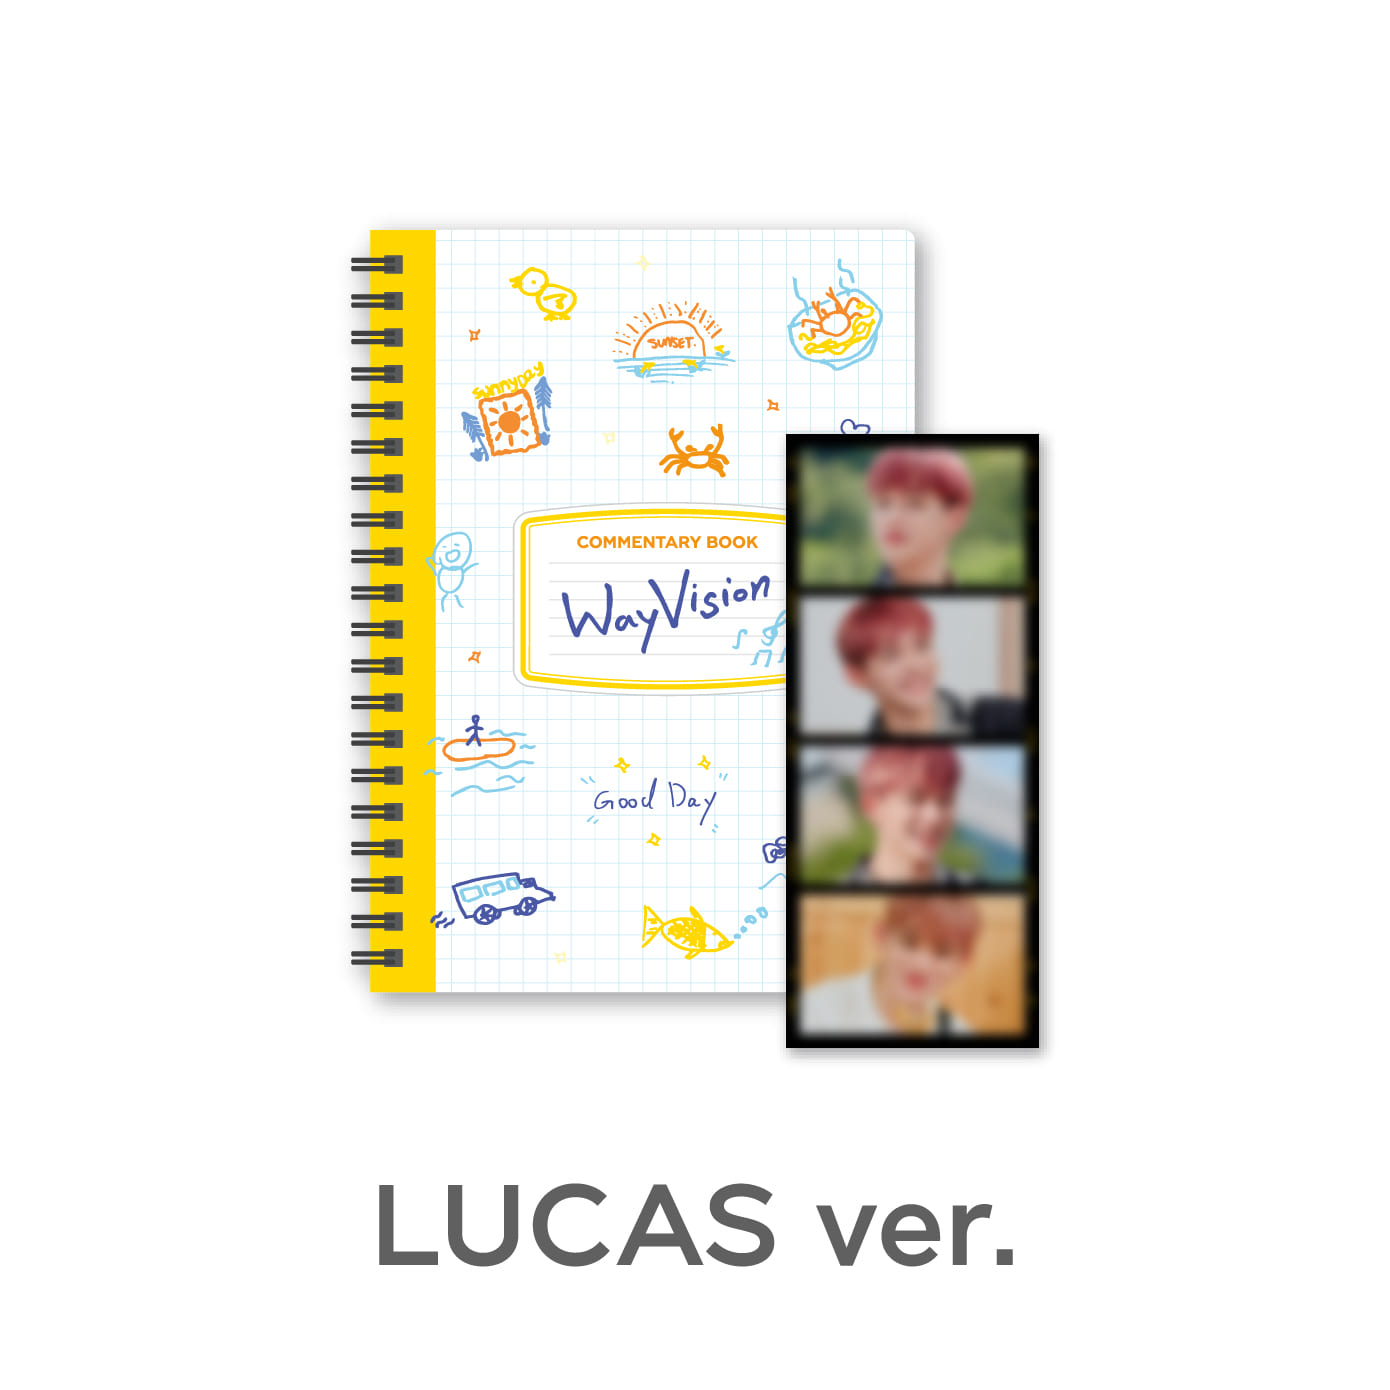 [PRE-ORDER] [WayVision] WayV_LUCAS_Commentary book+film SET케이팝스토어(kpop store)